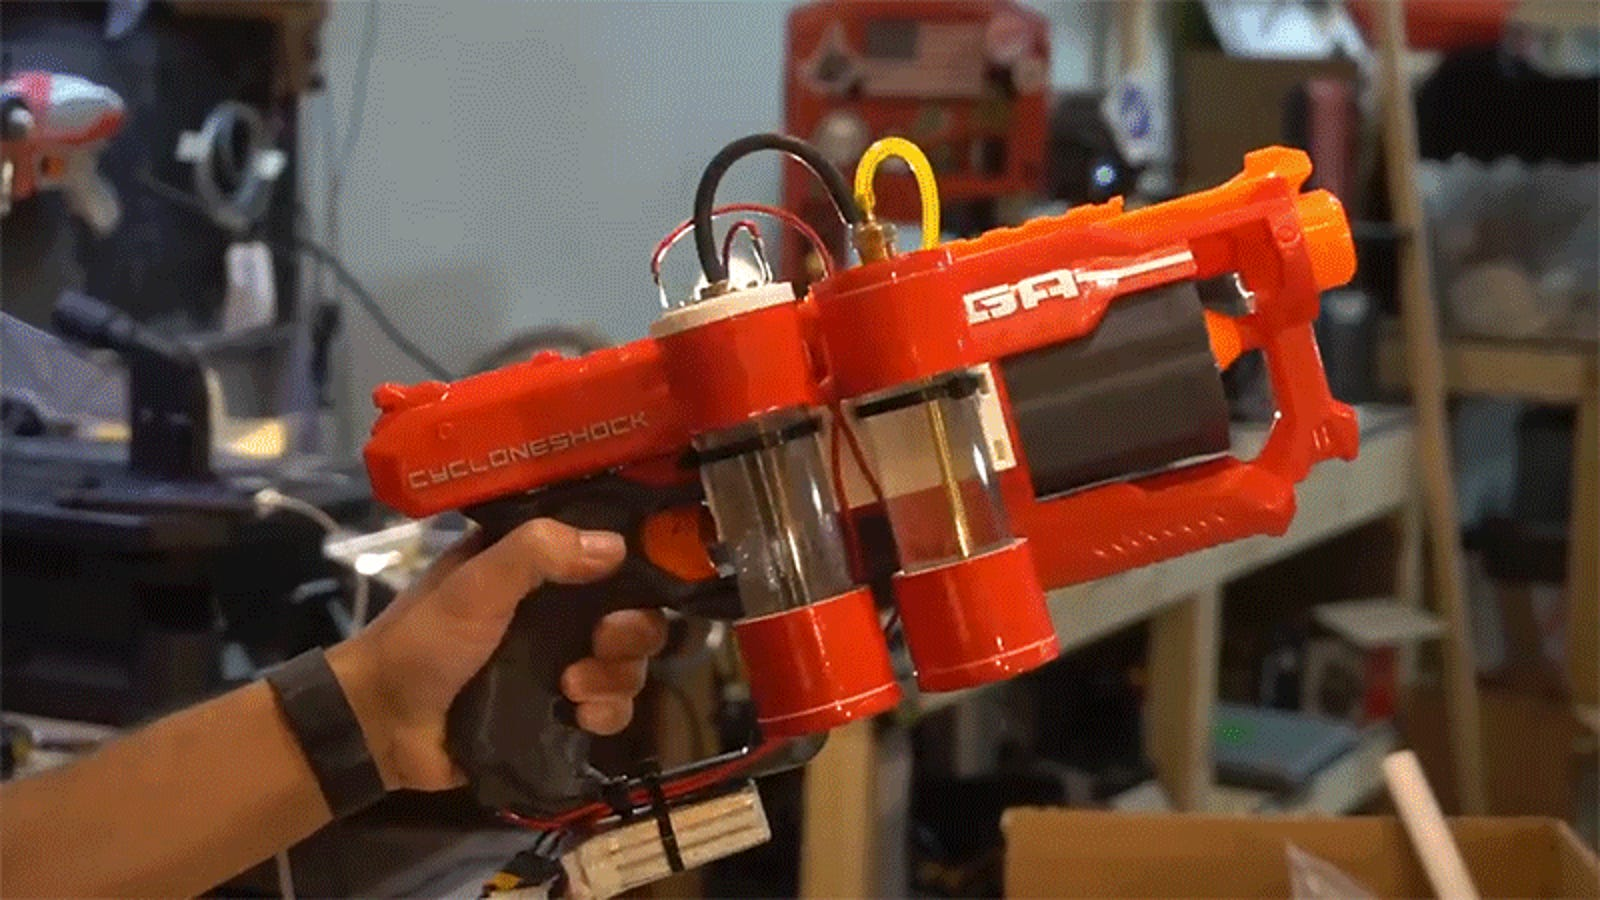 This Customized Hydrogen-Powered Nerf Blaster Makes Its Own Explosive Fuel